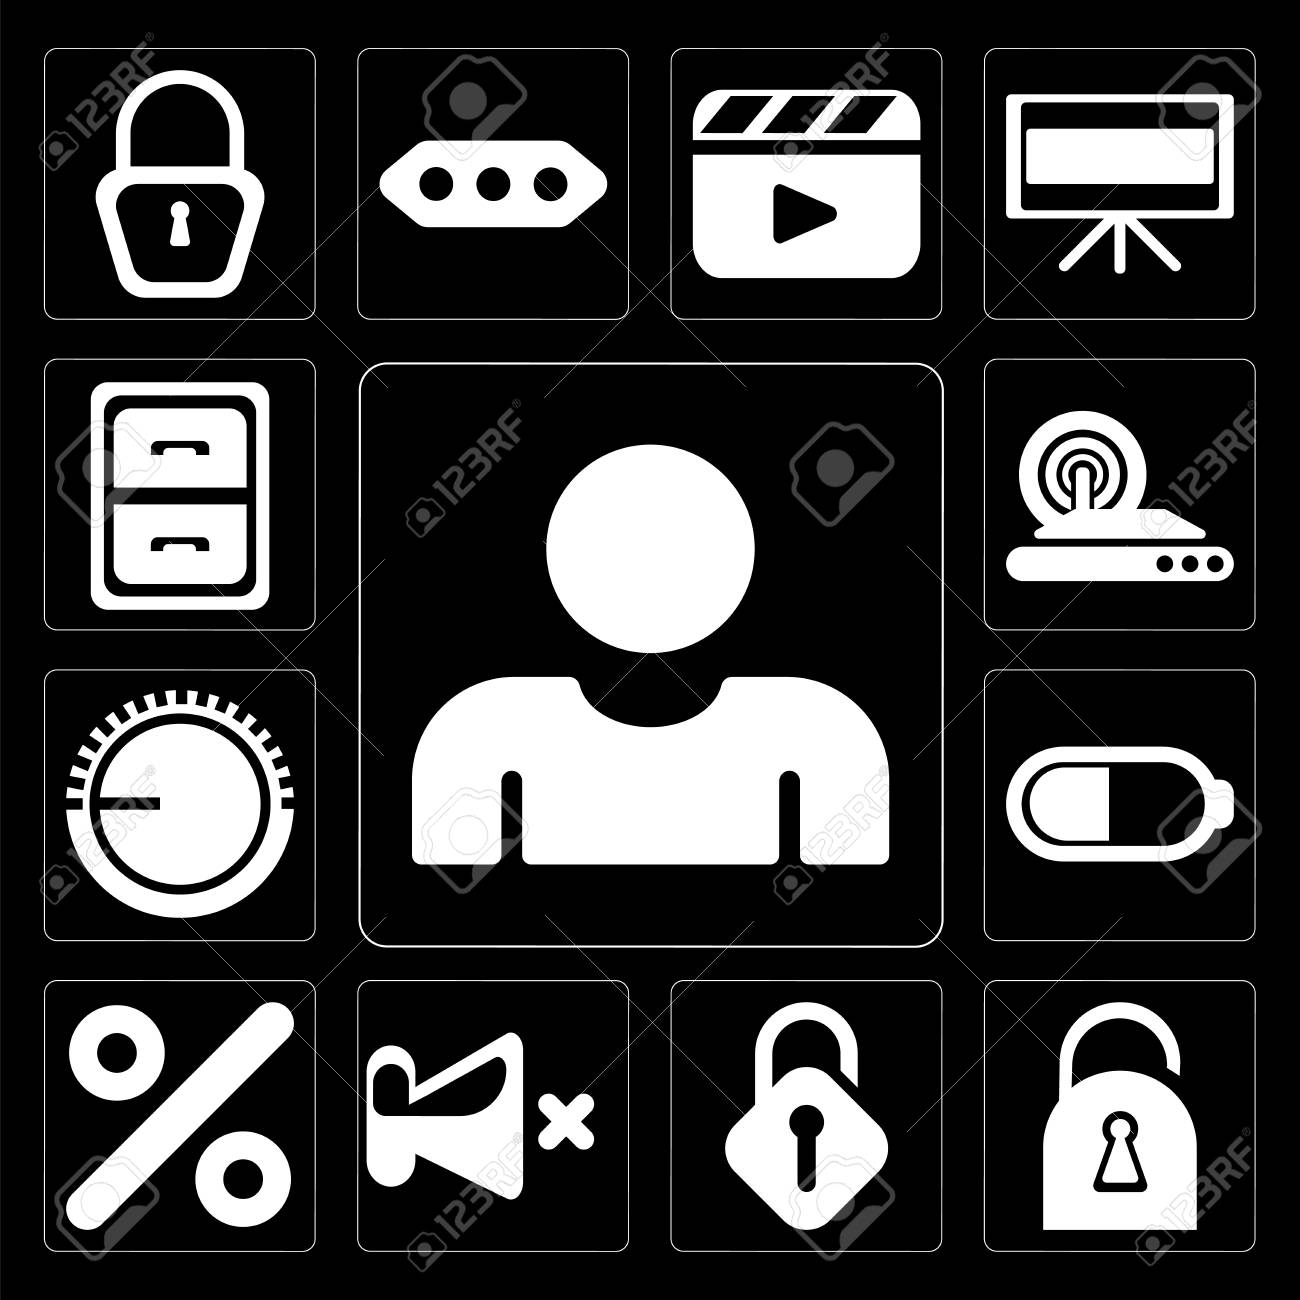 Set Of 13 simple editable icons such as User, Locked, Unlocked, Mute, Percent, Battery, Volume control, Wireless internet, Archive on black background - 111925532